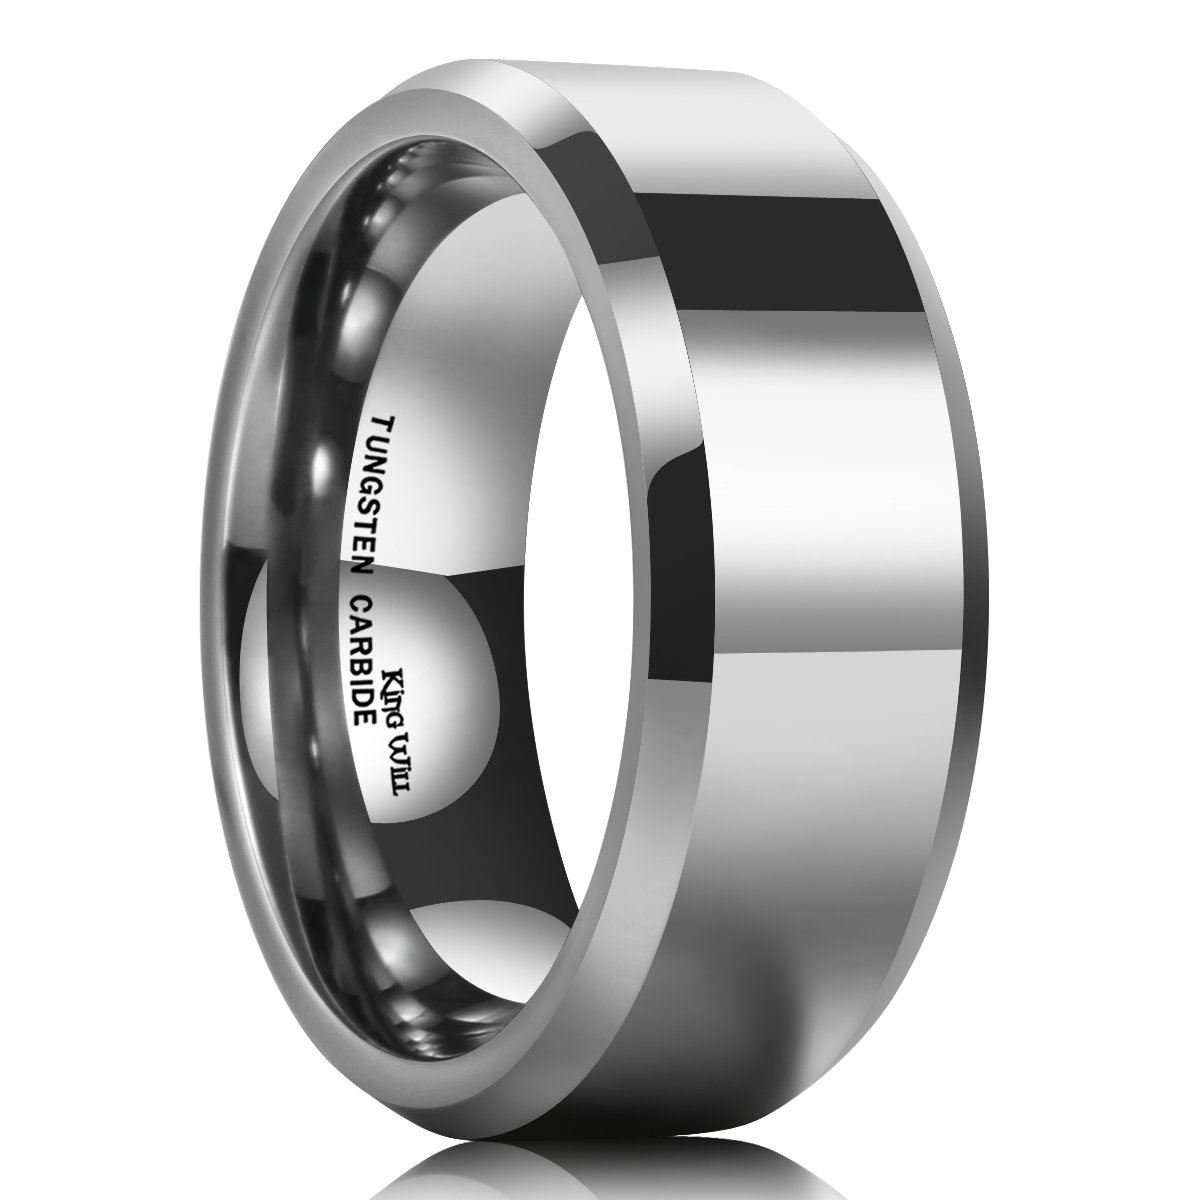 King Will Basic Men's 8mm Tungsten Carbide Ring Polished Plain Comfort Fit Wedding Engagement Band 10